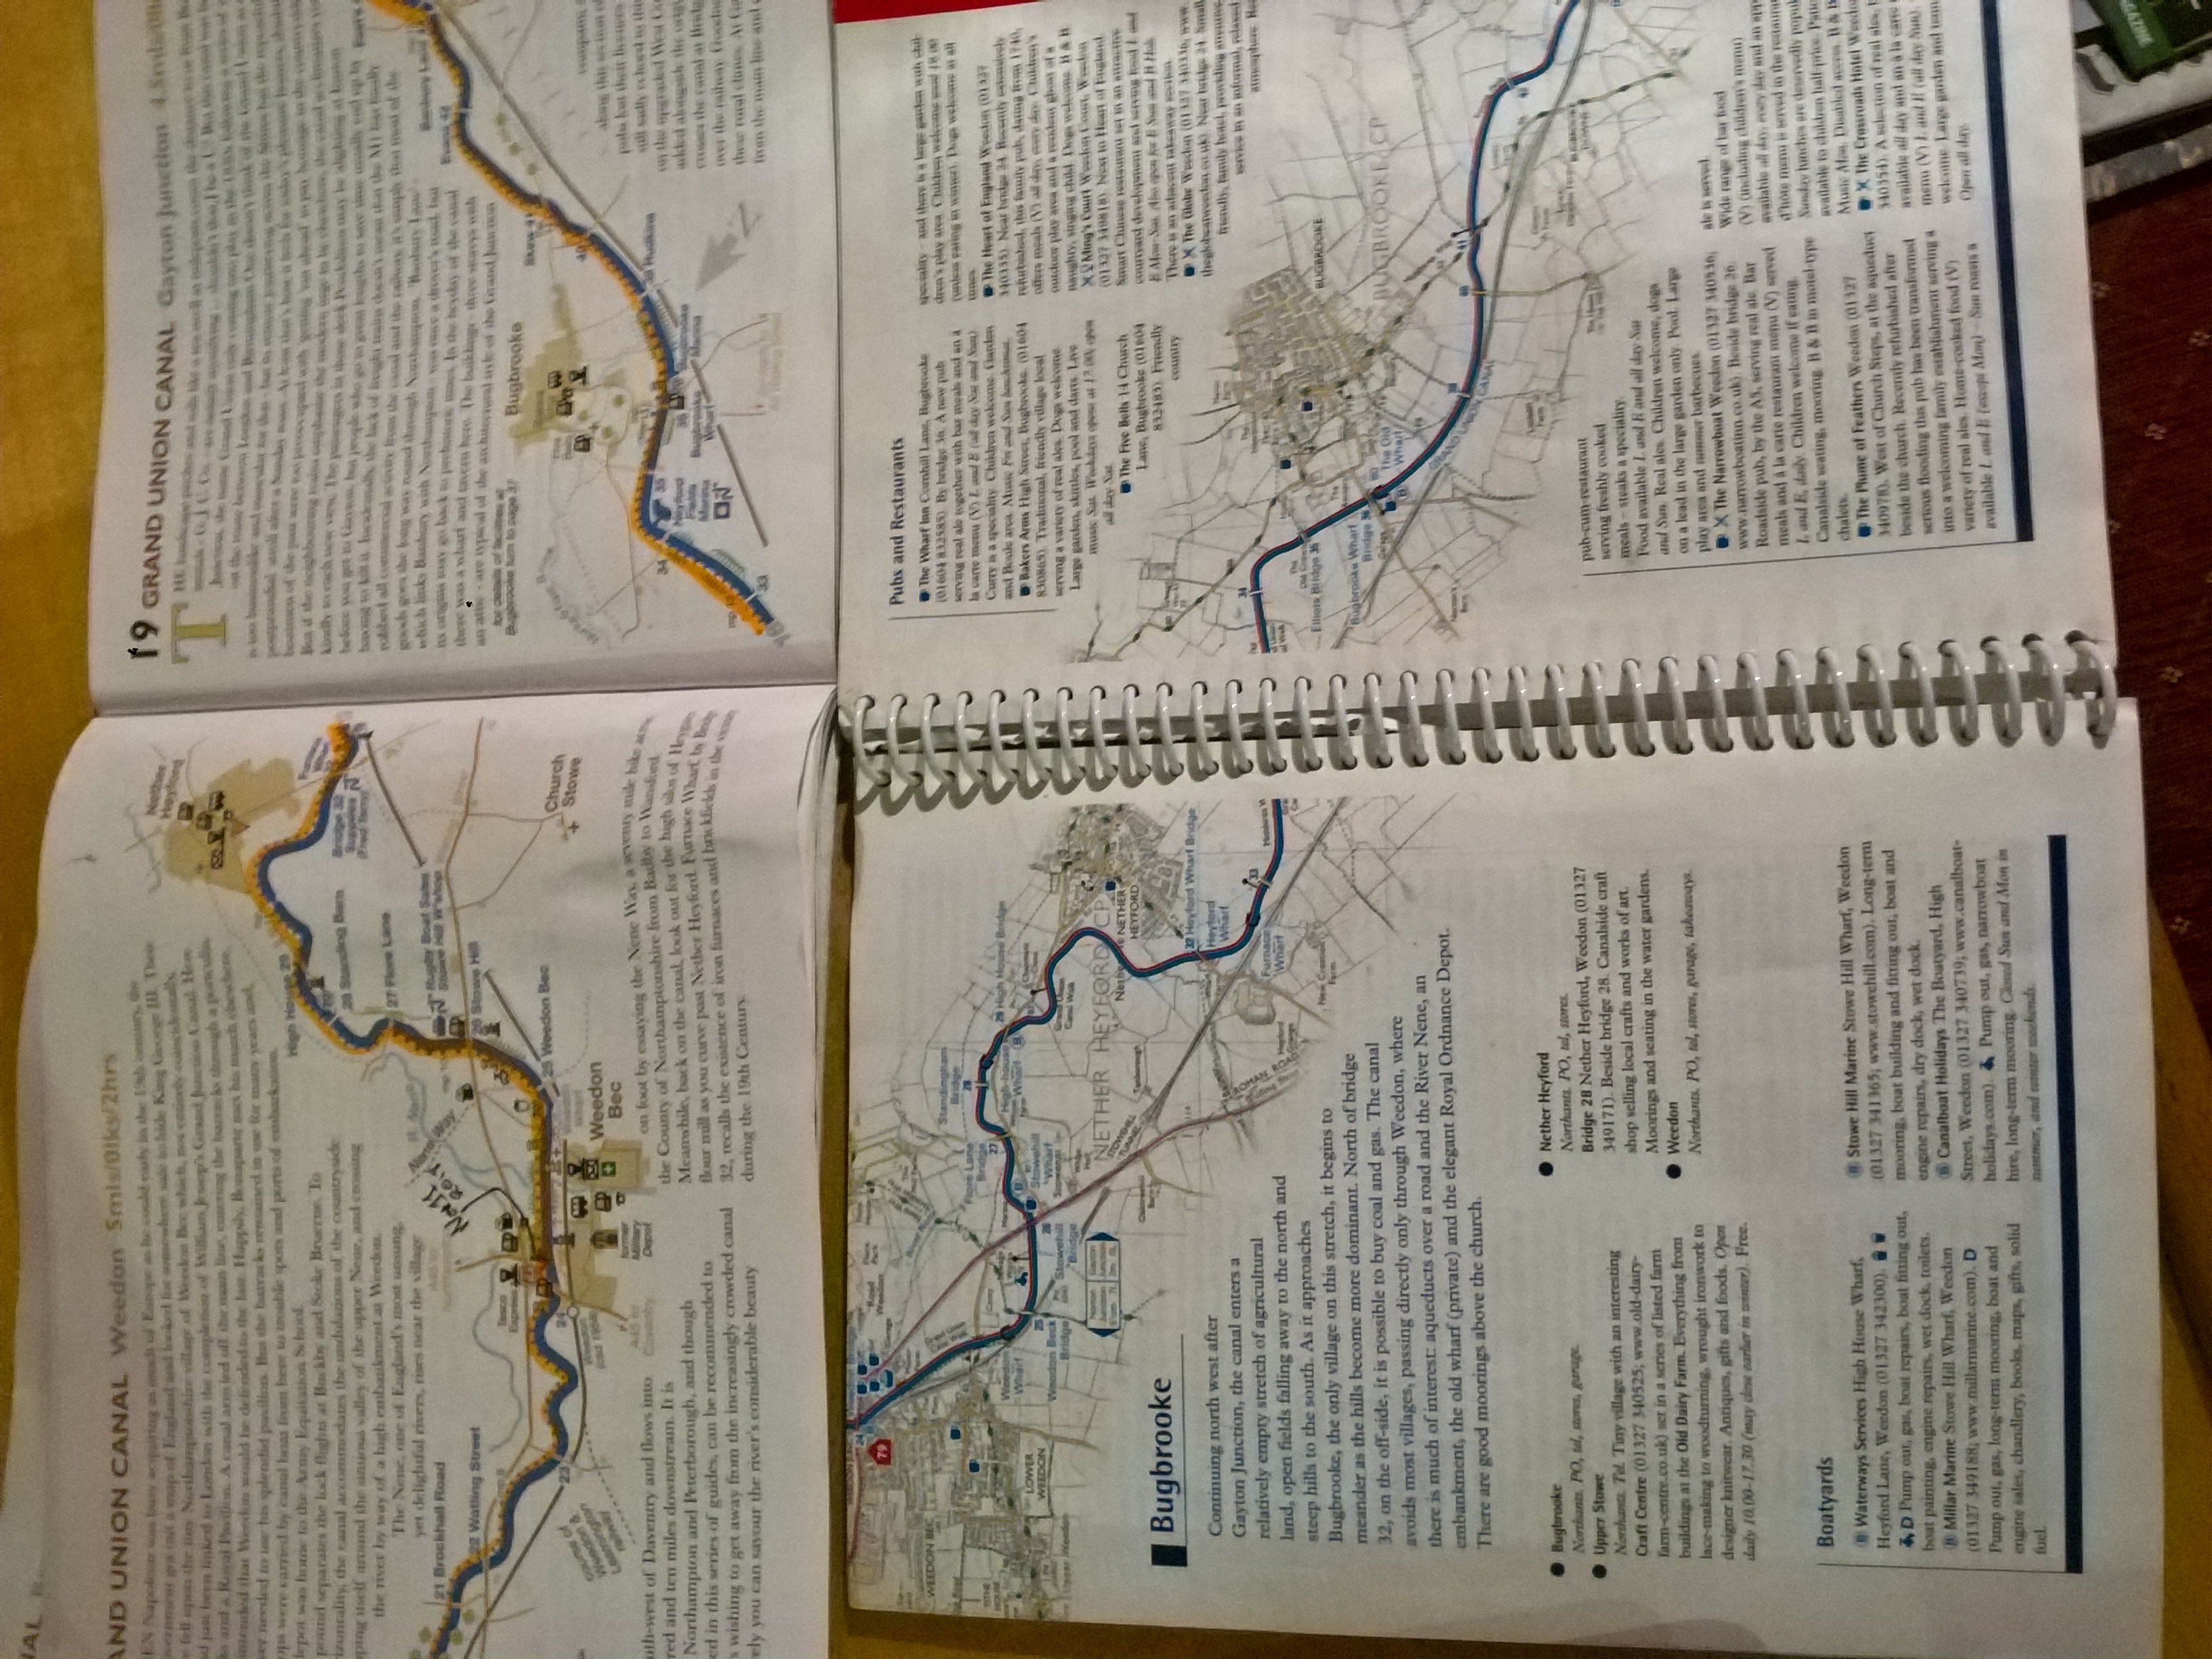 Photo of two open guidebooks with maps of the Grand Union Canal in Northamptonshire. The maps only include half a mile or a mile on either side of the canal, so they are very long and stretched out, cutting across the pages. The descriptive text wraps around the shape of the map.